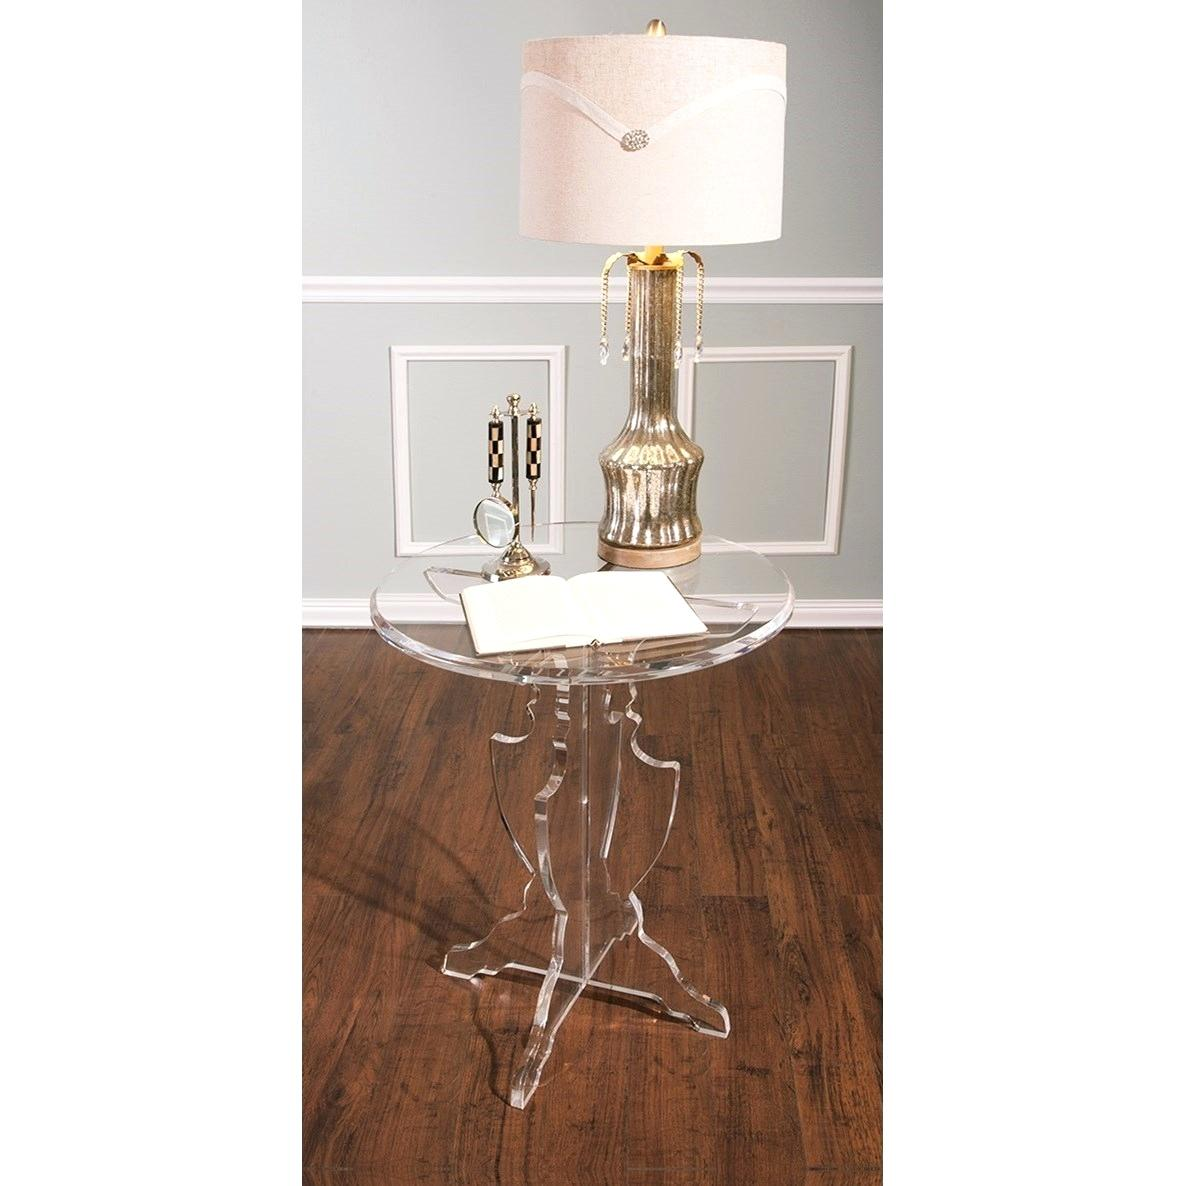 acrylic accent table columbiariverconcours worldwide home tables and cabinets prestige baroque clear high lamp zella pier one wall clocks sheesham homepop metal small pub chairs